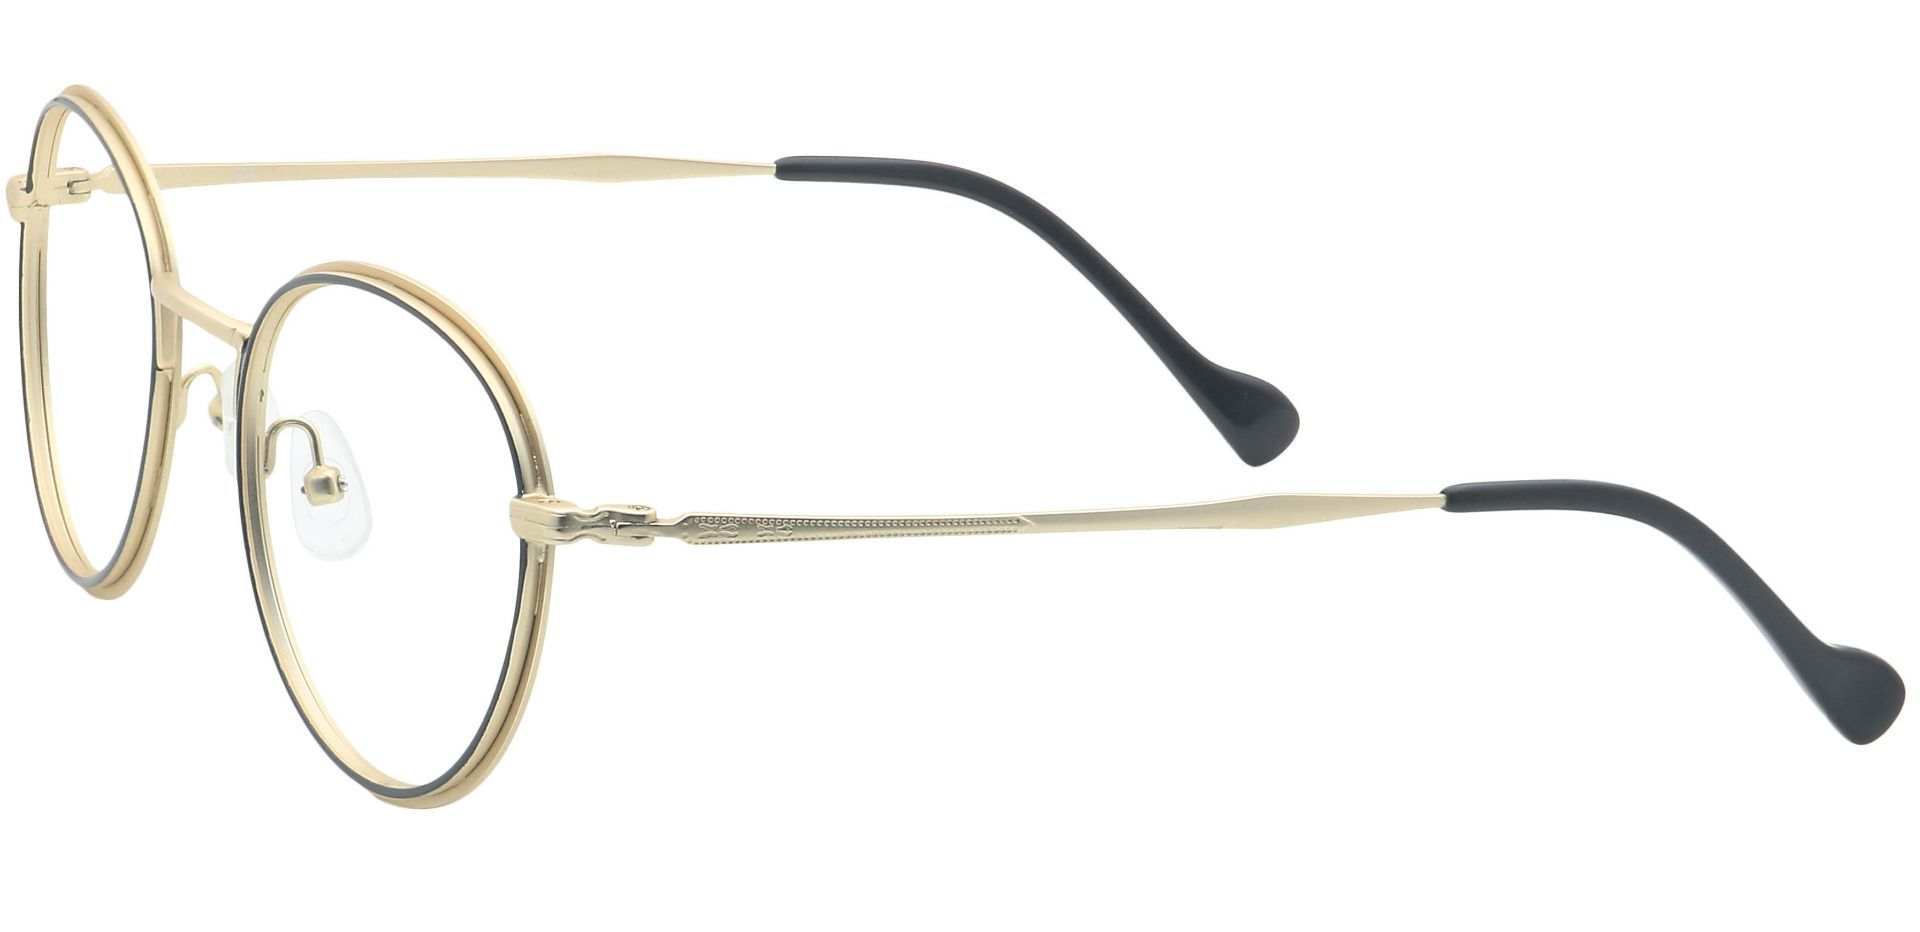 Page Oval Eyeglasses Frame - Yellow